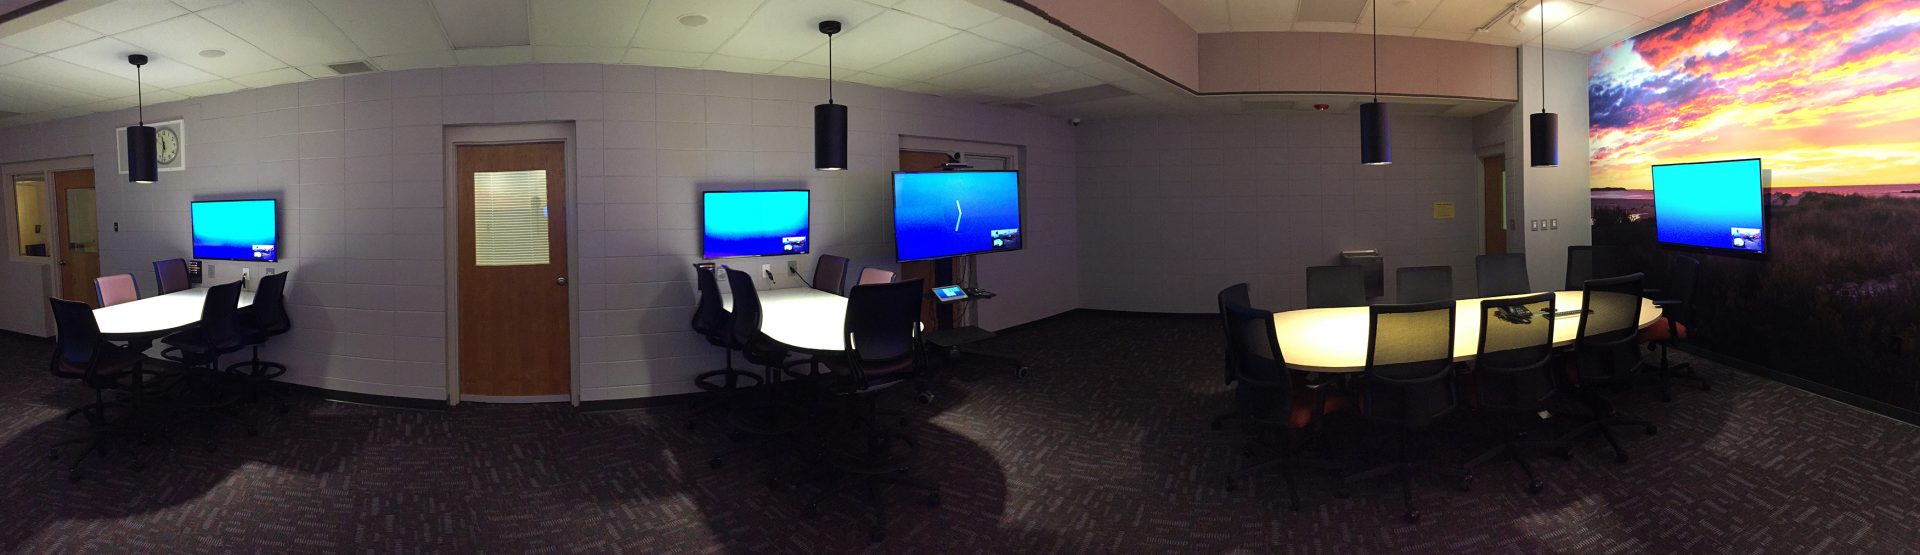 Innovation Room 2